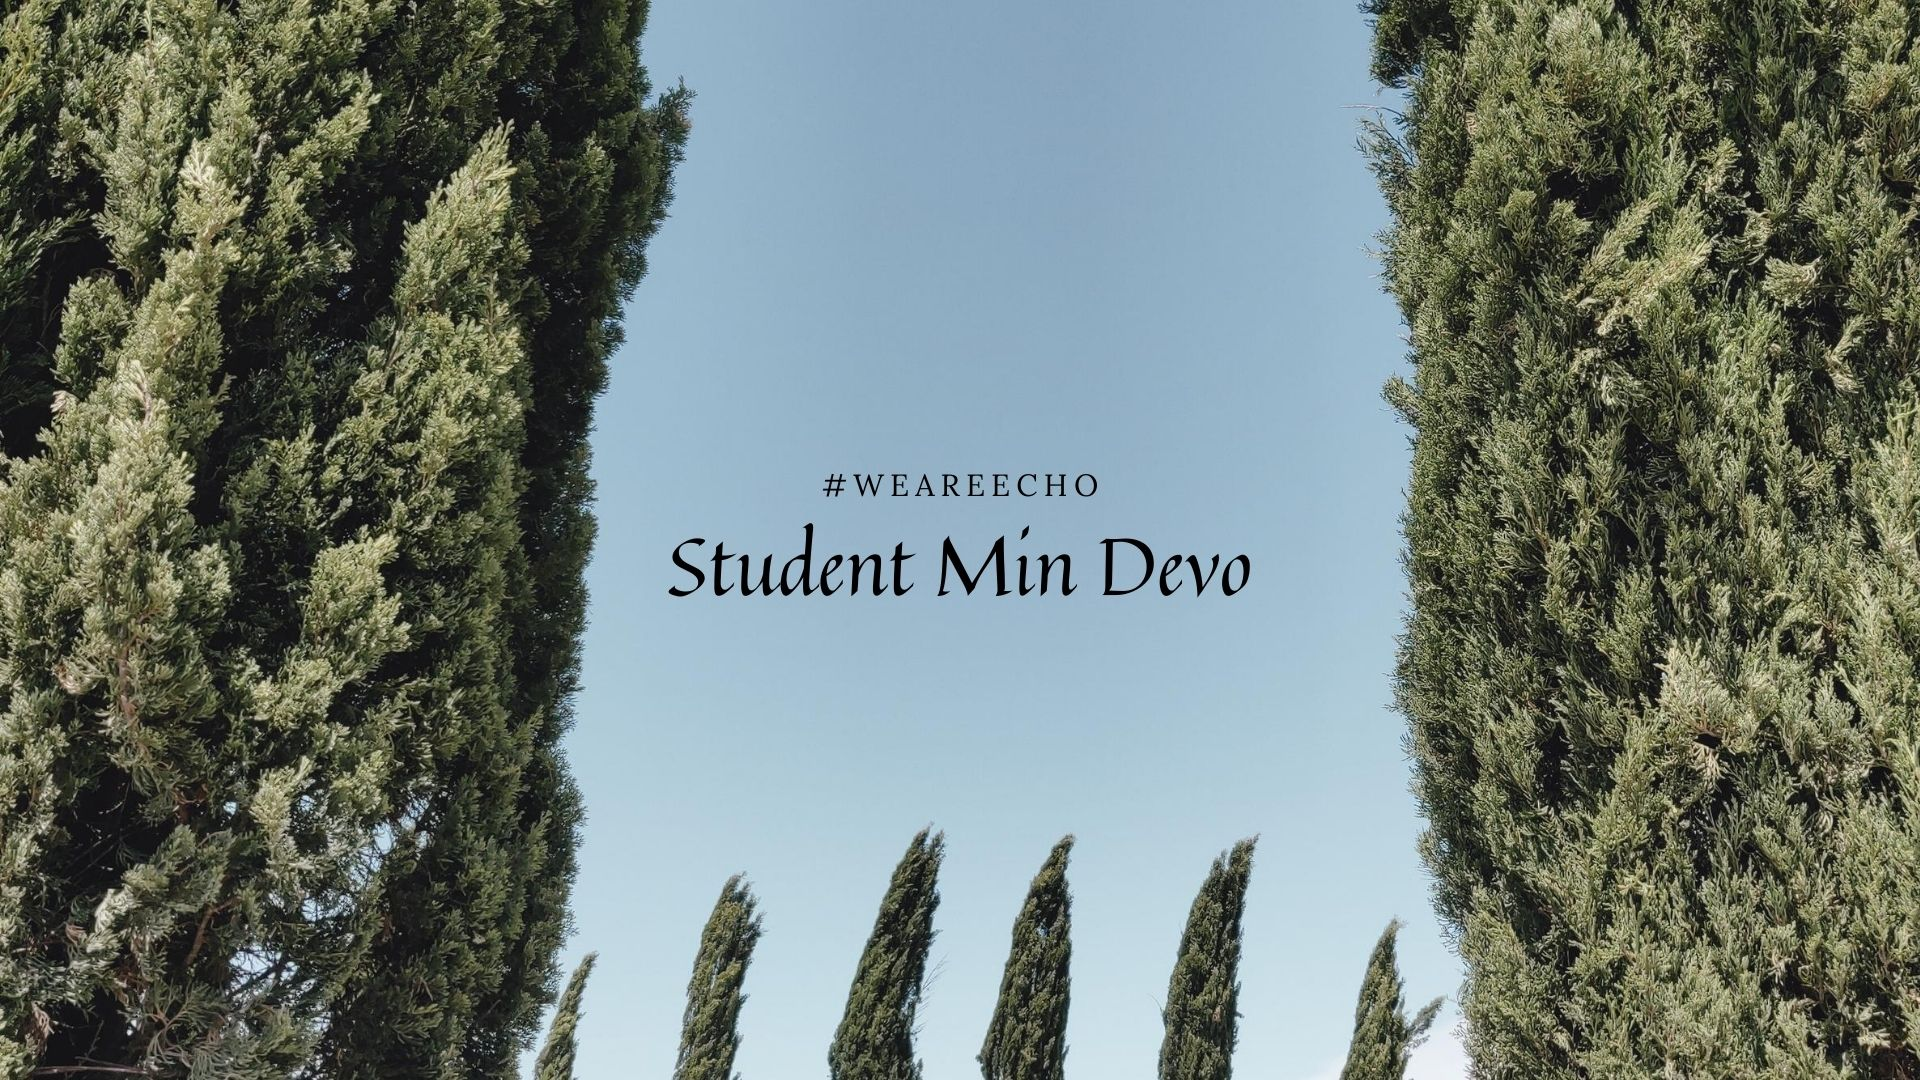 Series: Student Min Devo, Aug 2020